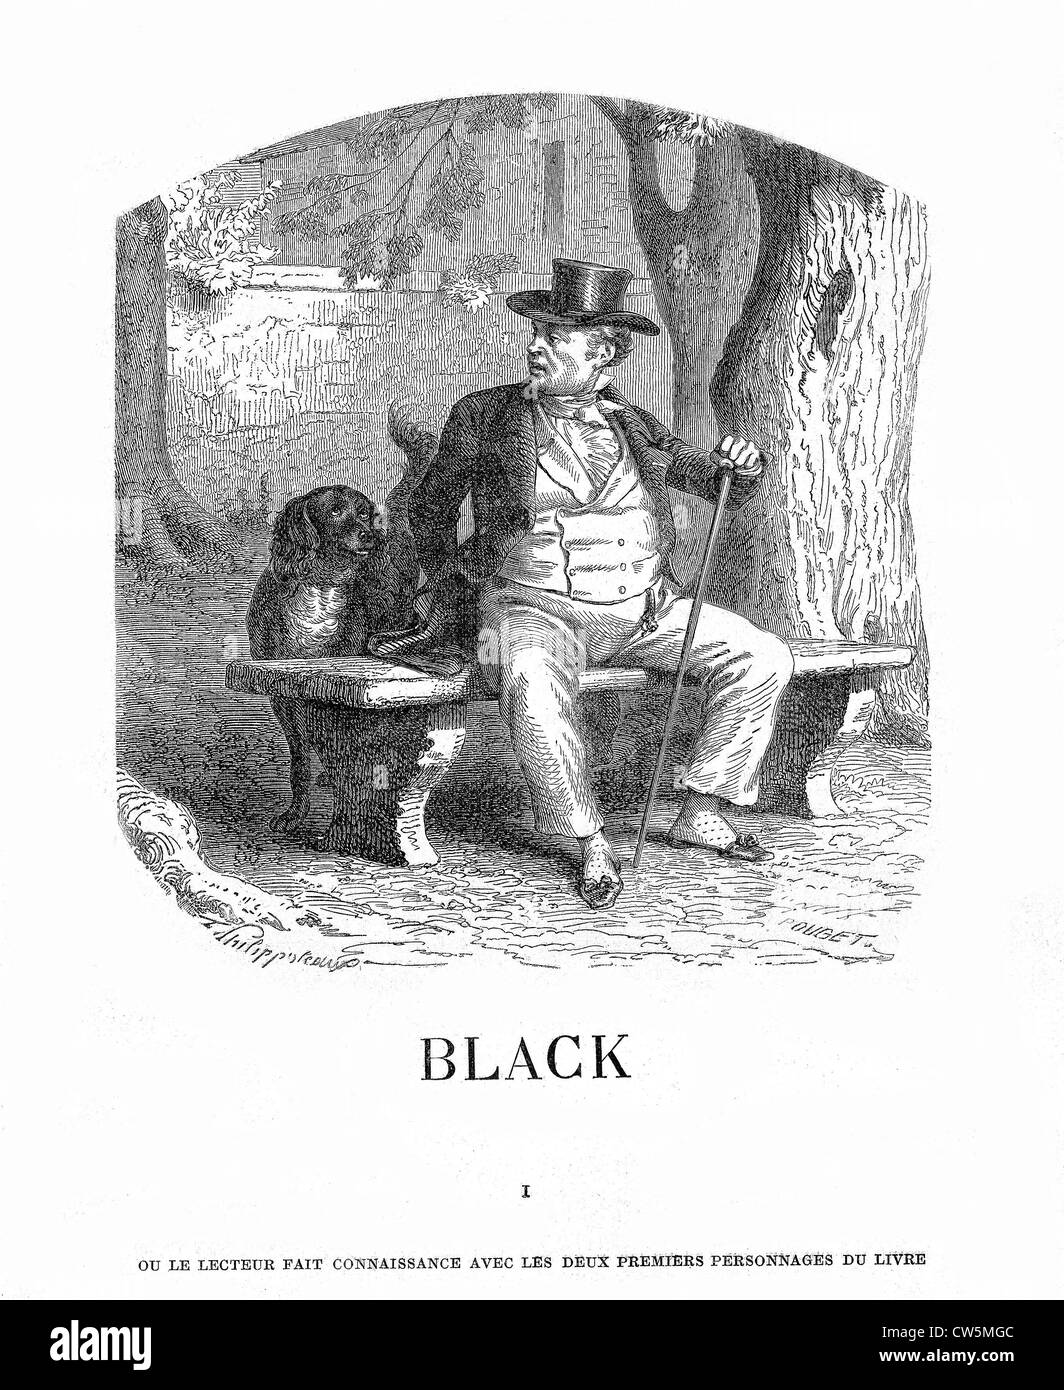 Black: The Story of a Dog - Stock Image